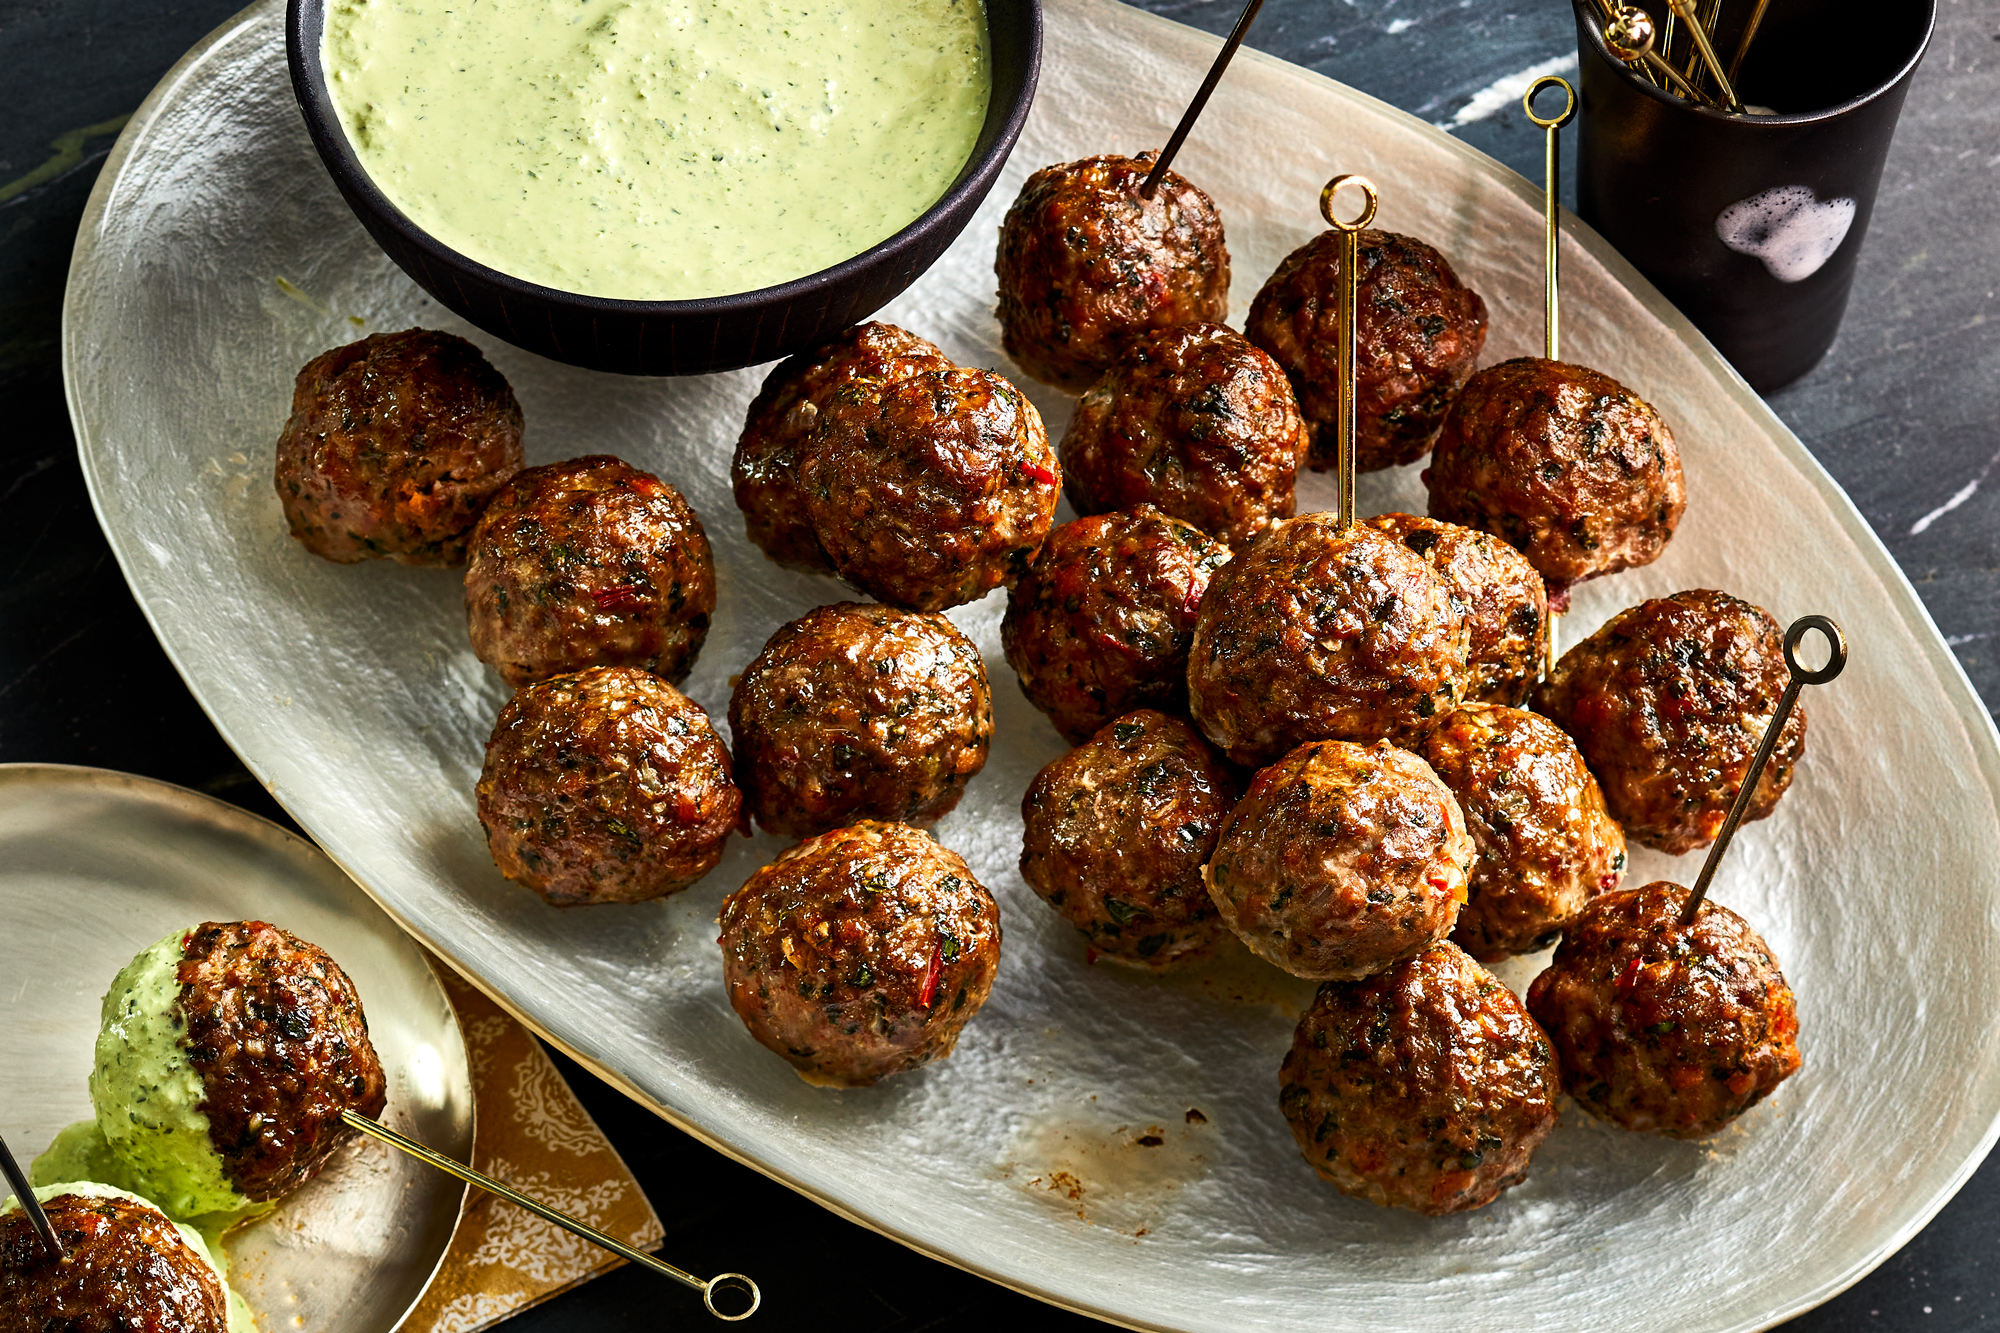 Spicy Lamb Meatballs with Green Goddess Dip